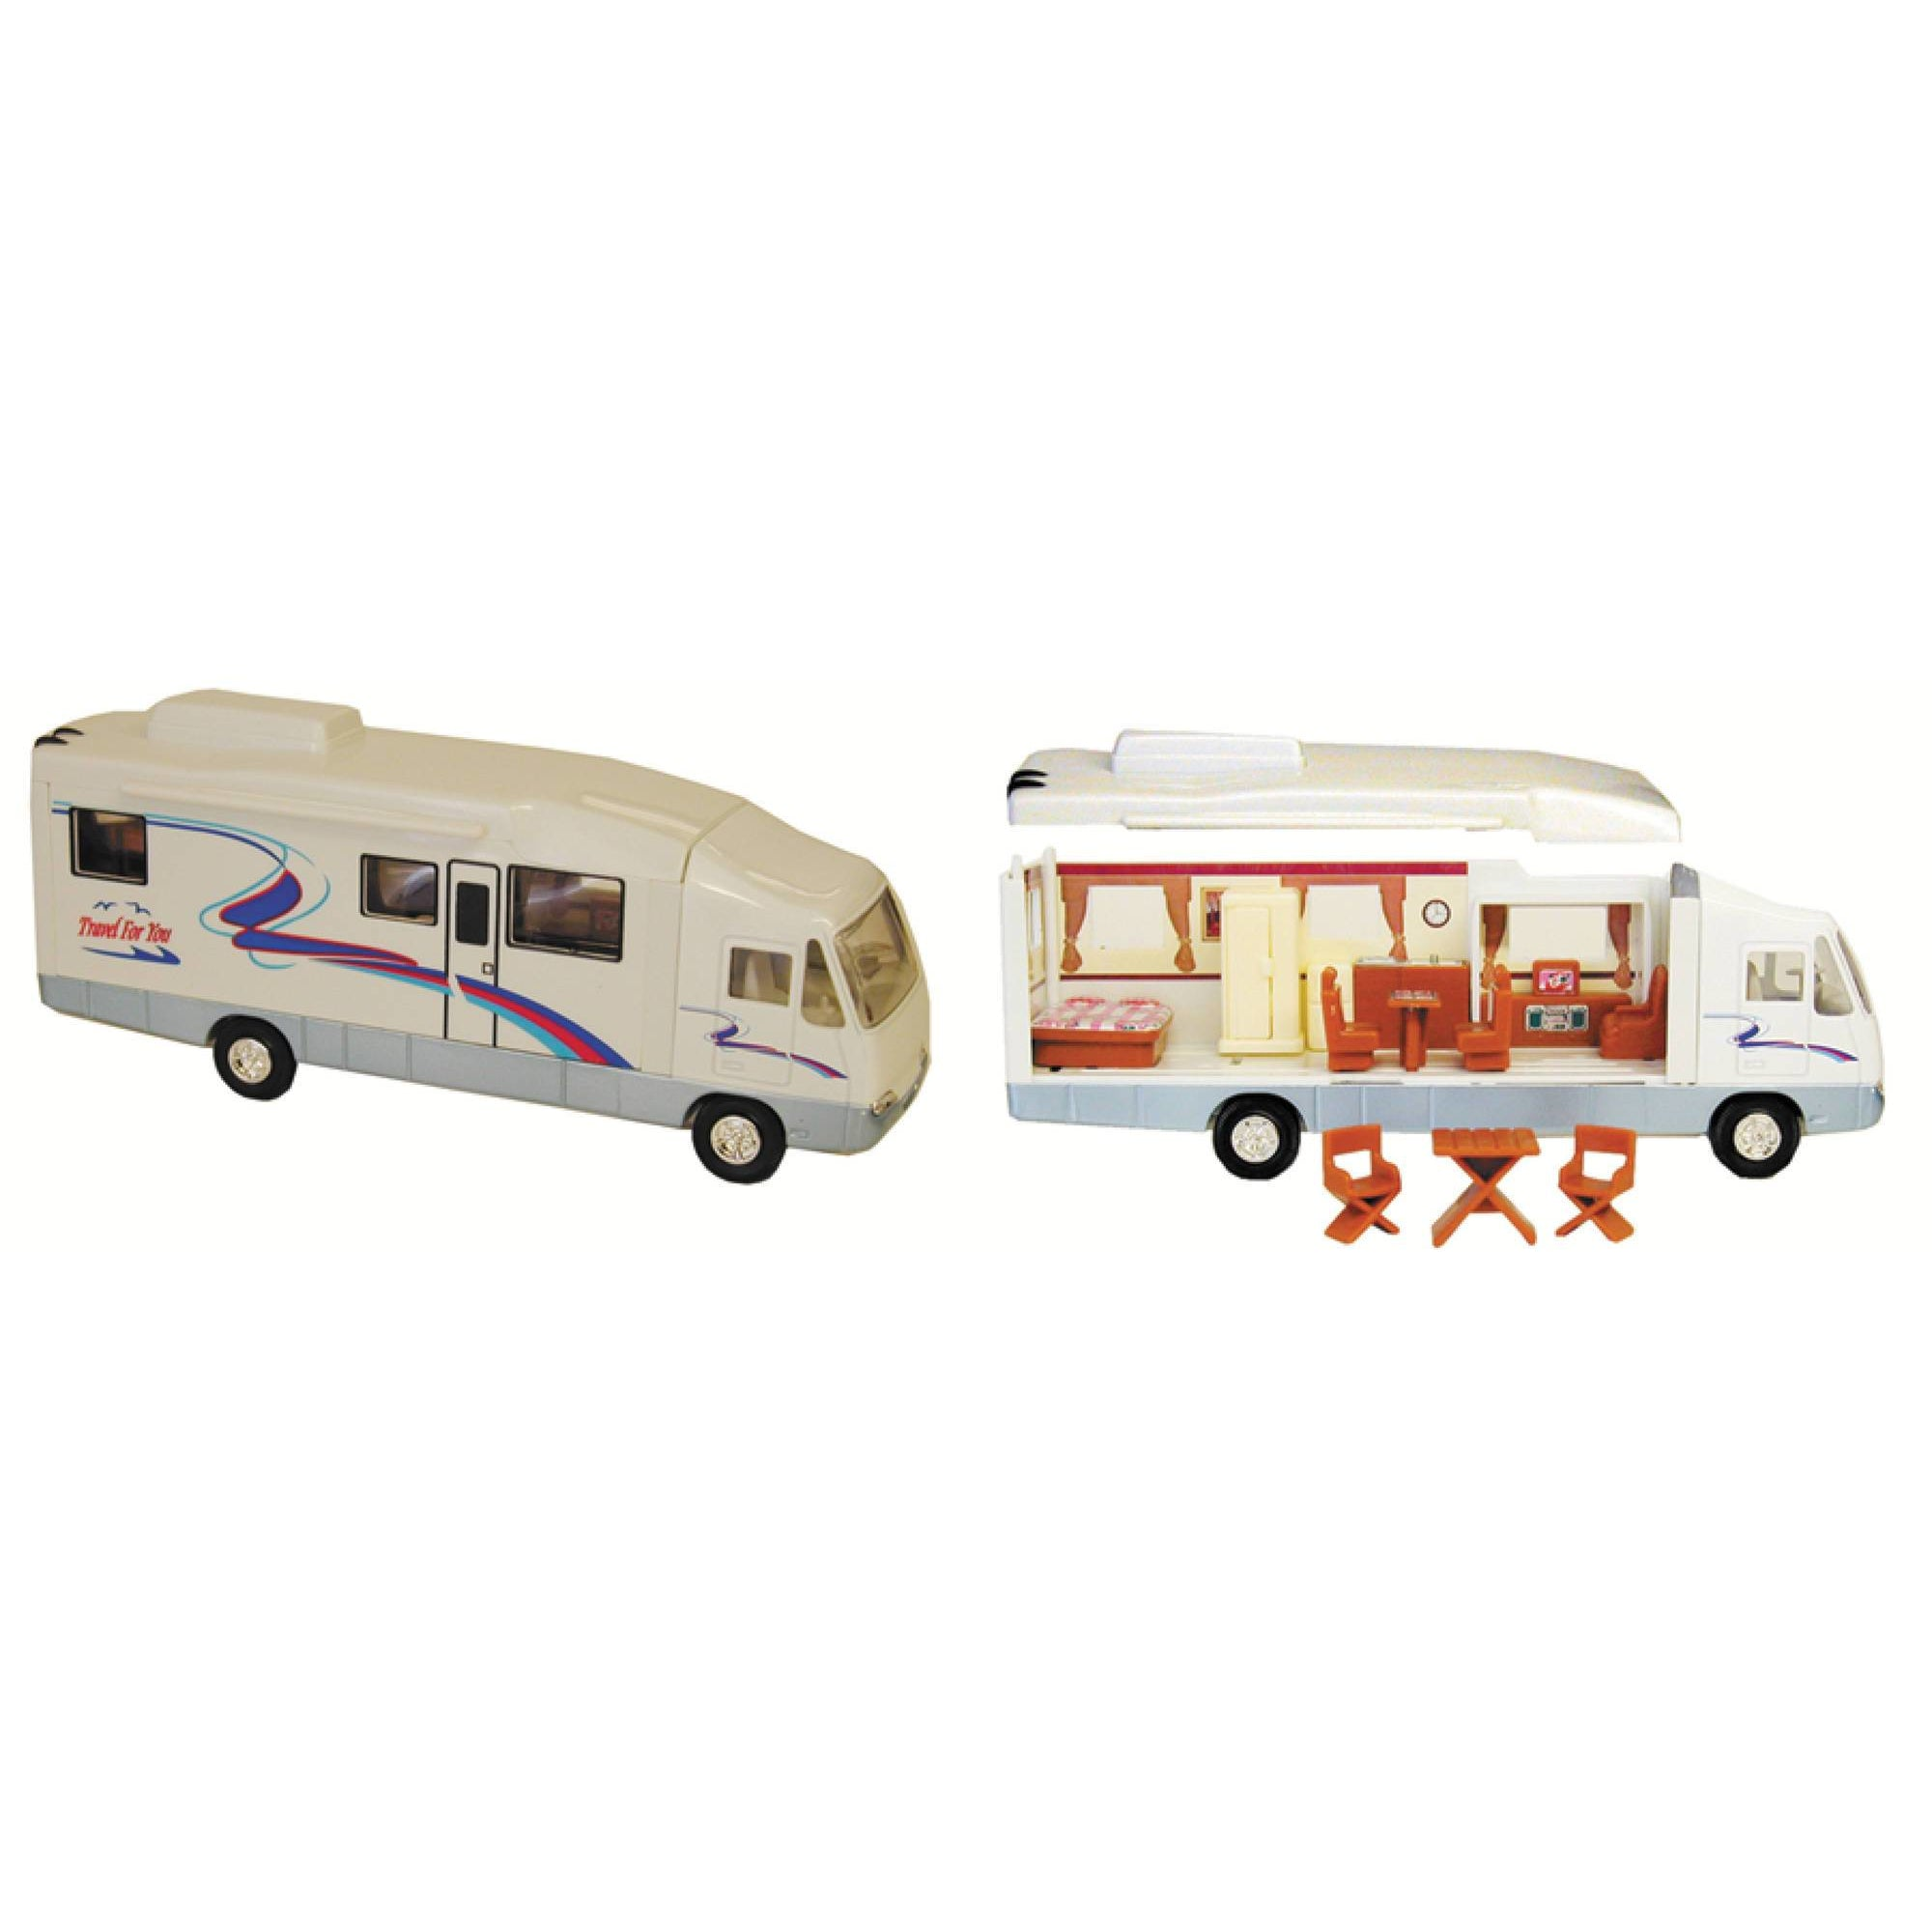 Prime Products 27-0001 Class A Motorhome Toy